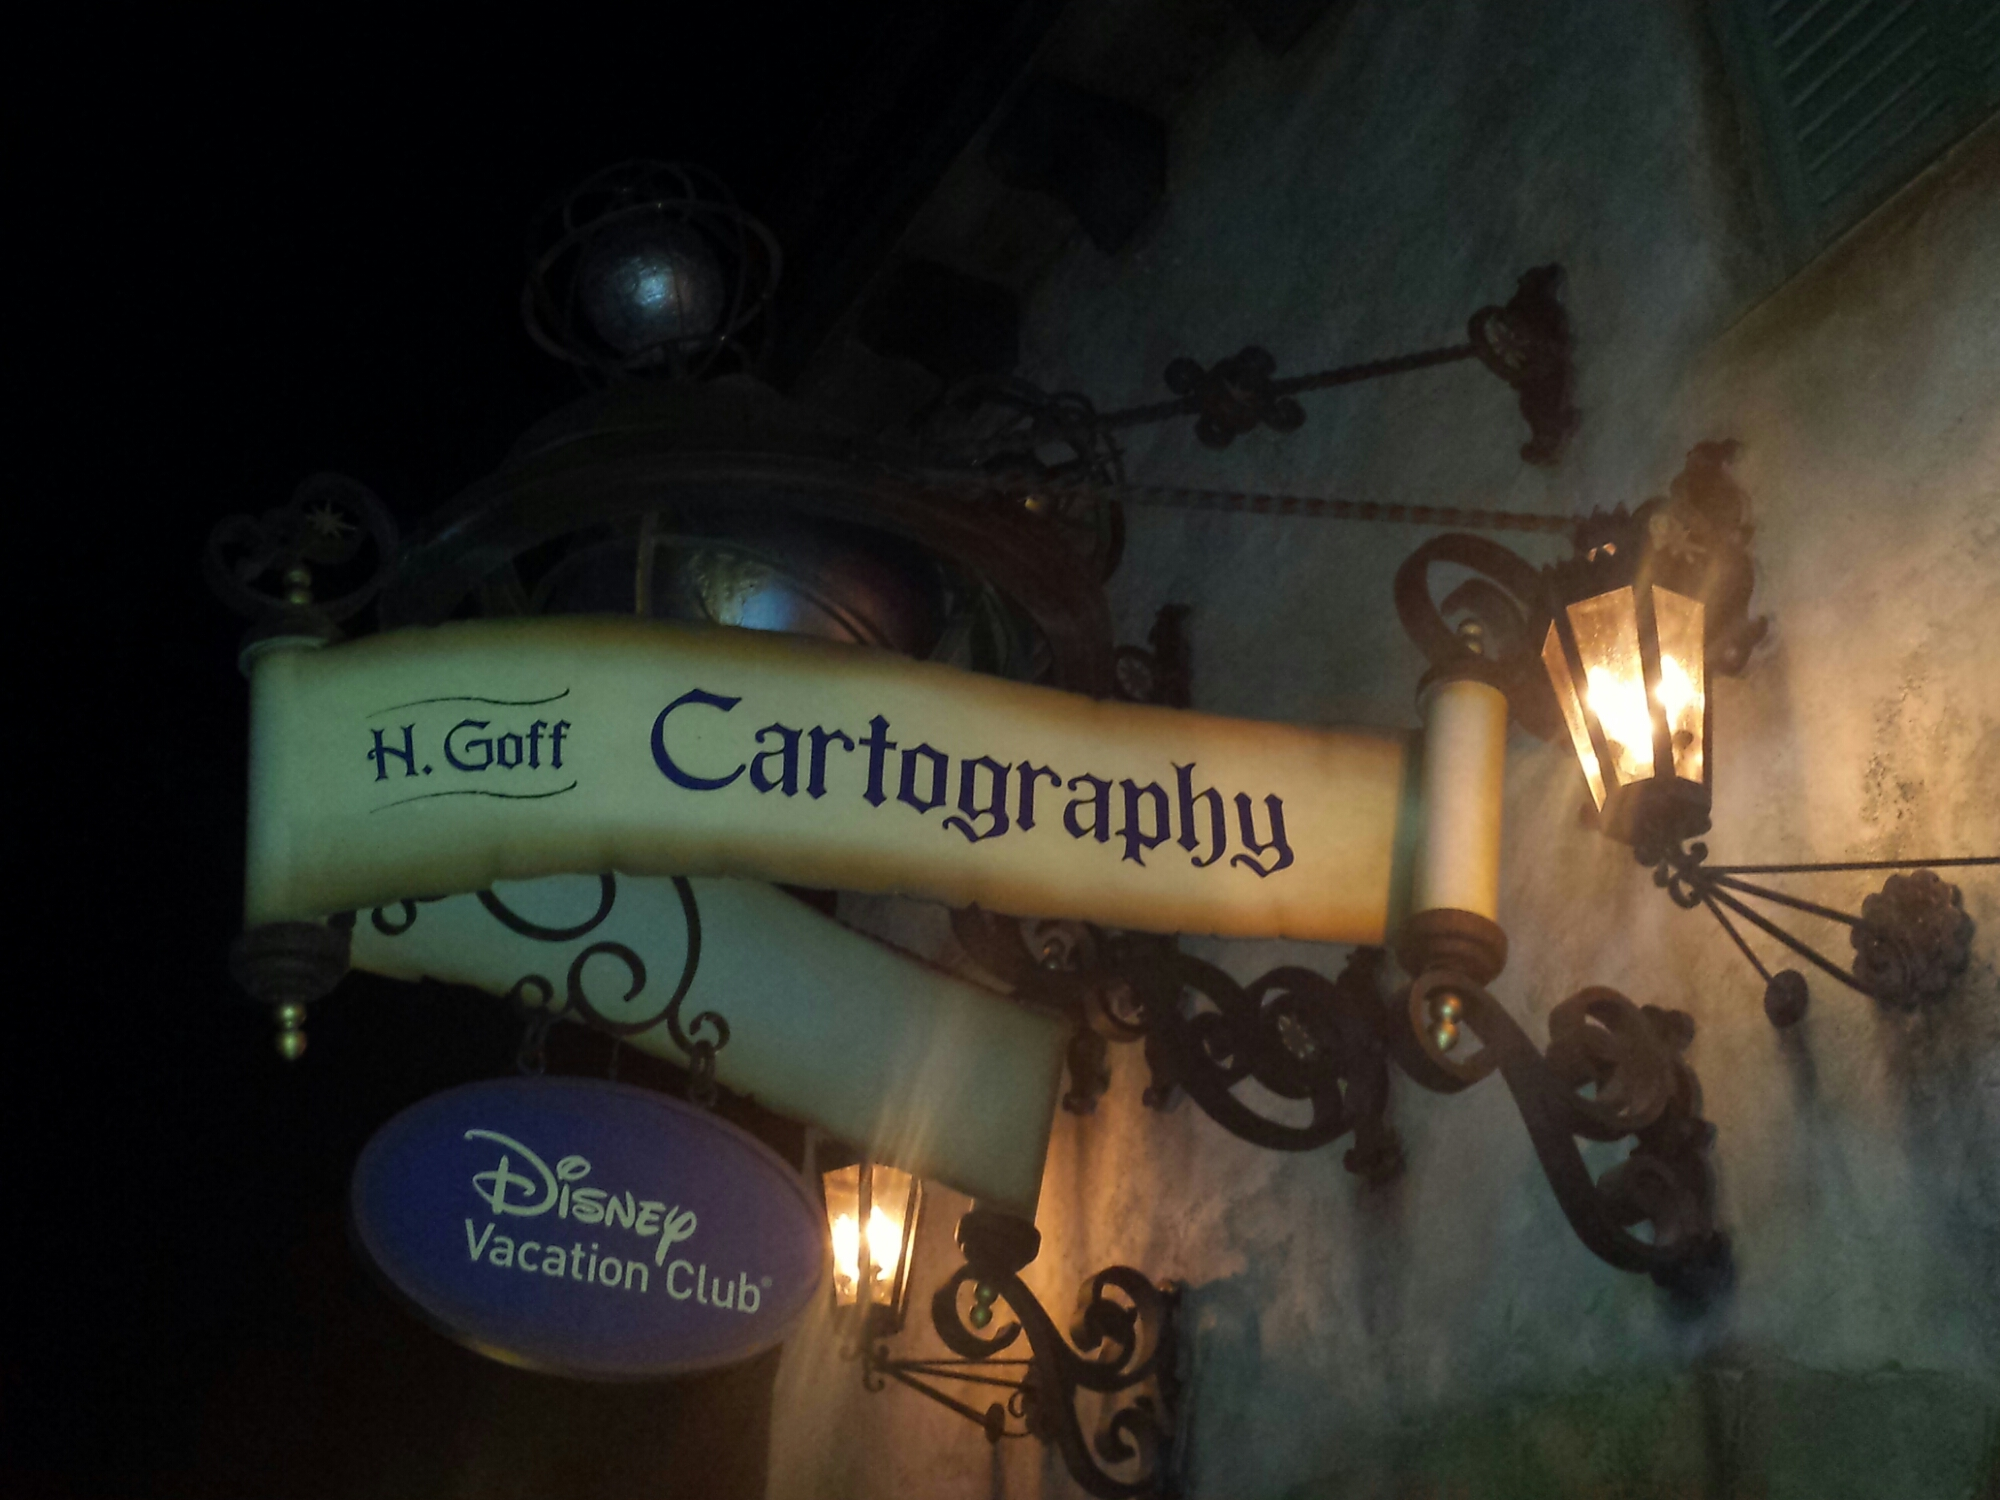 H. Goff Cartography in Fantasyland #WDW Magic Kingdom